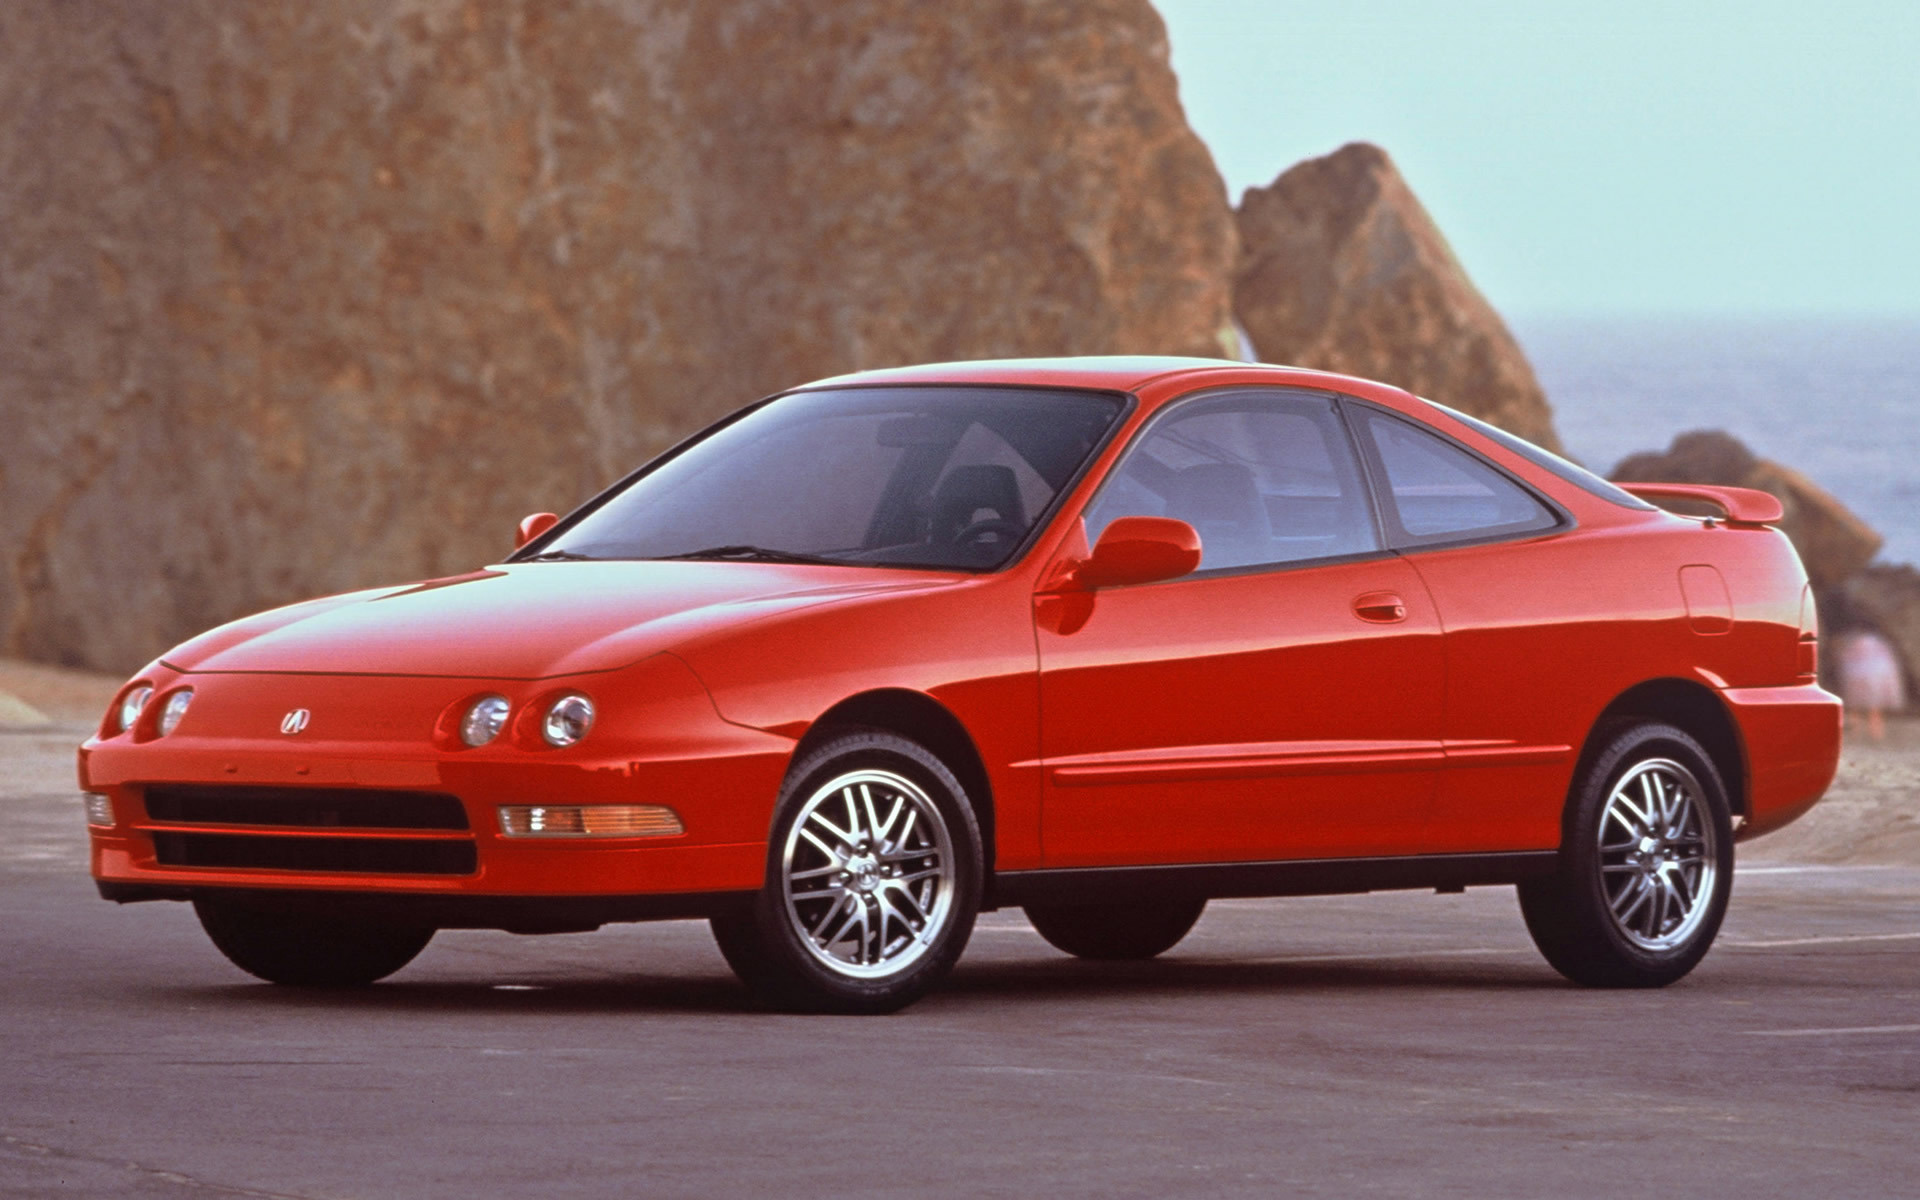 1994 Acura Integra GS-R - Wallpapers And HD Images